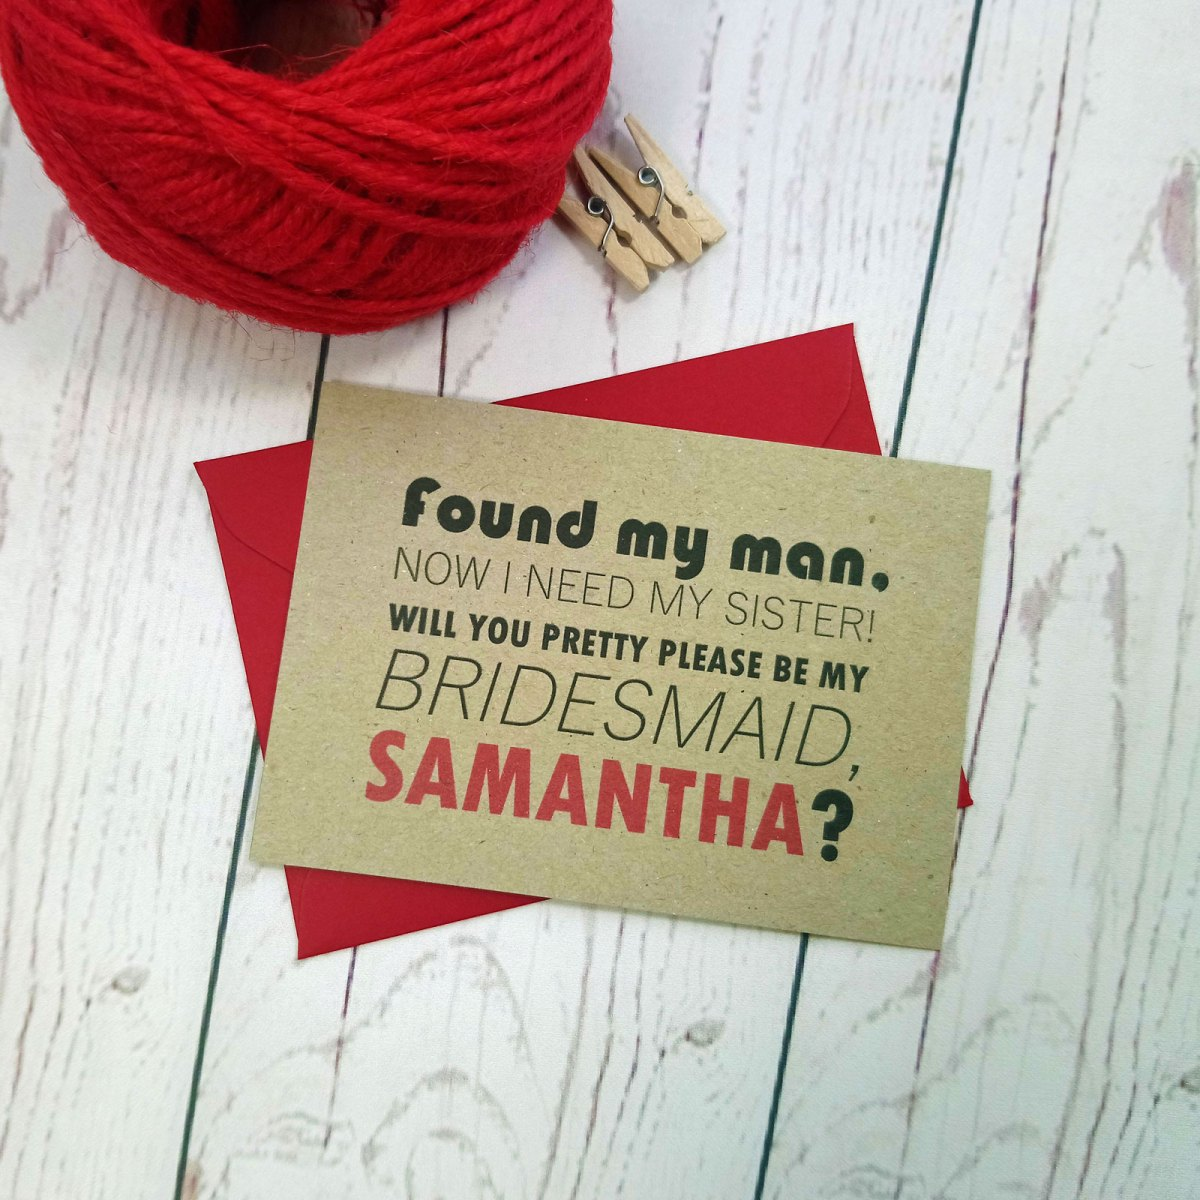 Photo Booth Bridesmaid Request Card Found my man now I need my sister! with red envelope